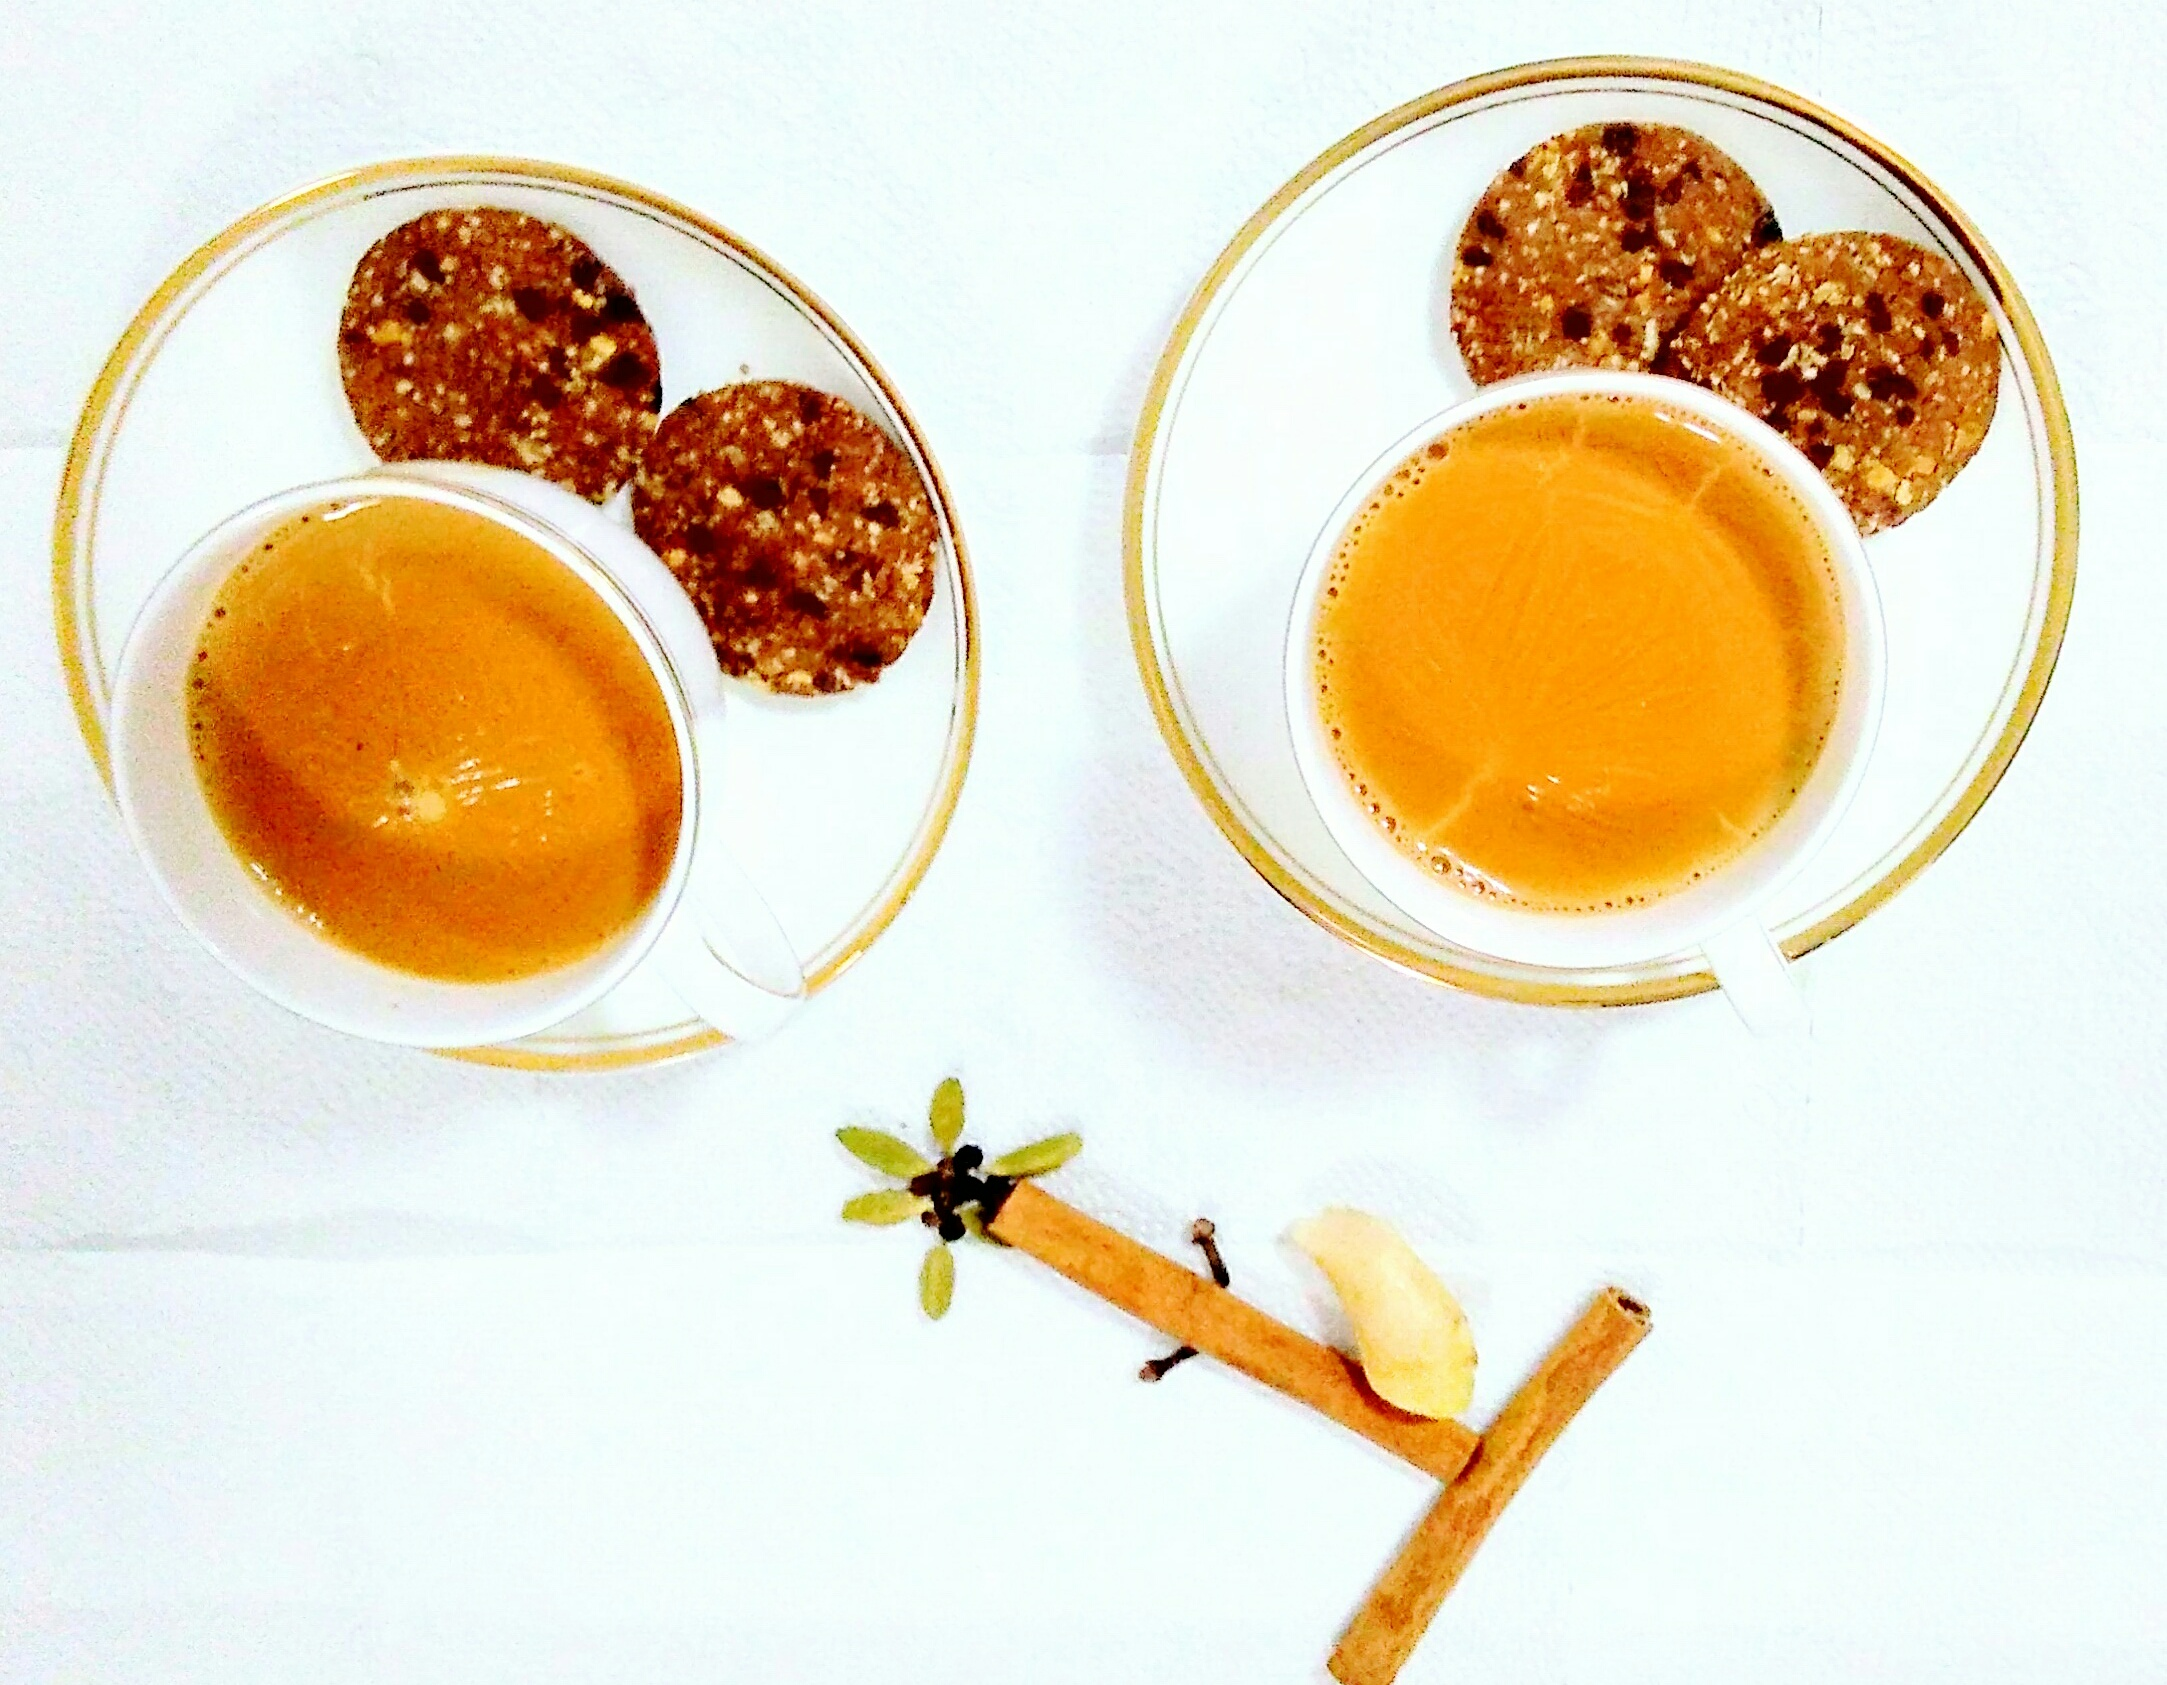 Masala Chai(spiced milk tea)